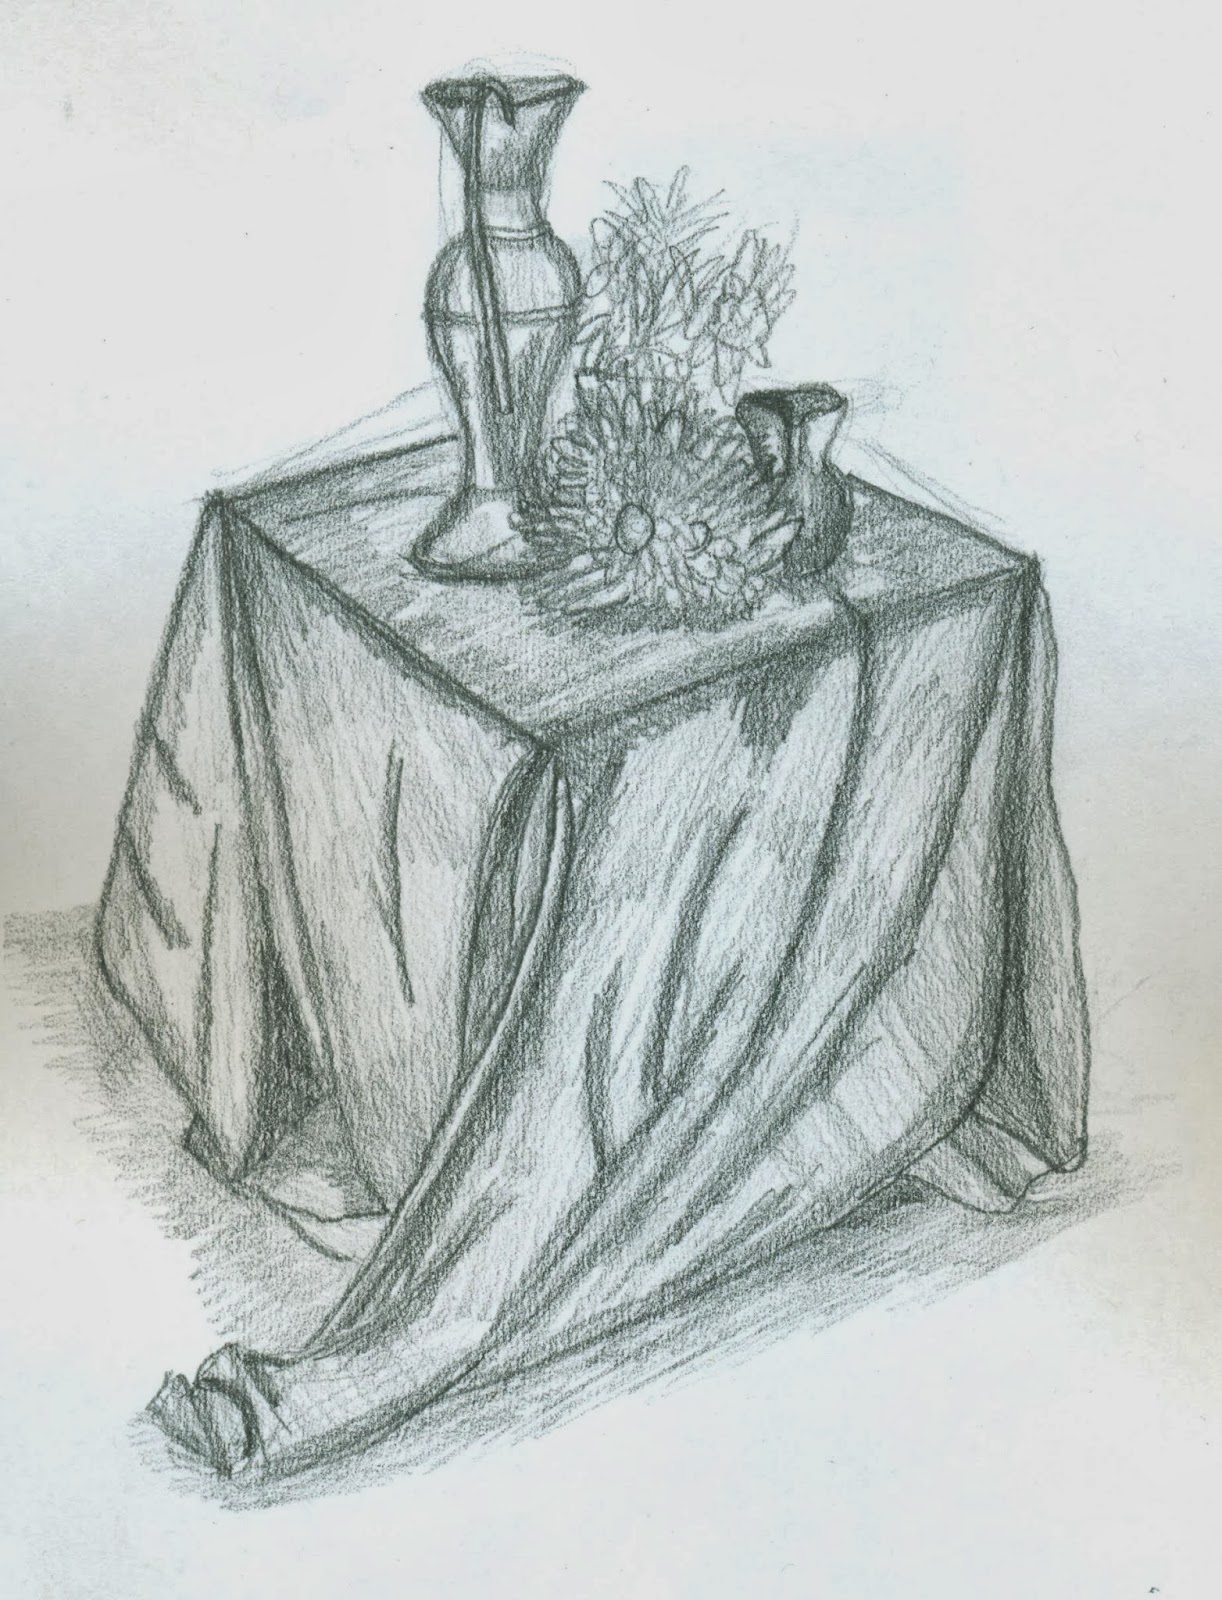 Observational drawings planning a drawing more perspective this is a graphite pencil drawing of a selection of vases and pots with flowers in between them the objects were arranged in such a way as to give it an reviewsmspy